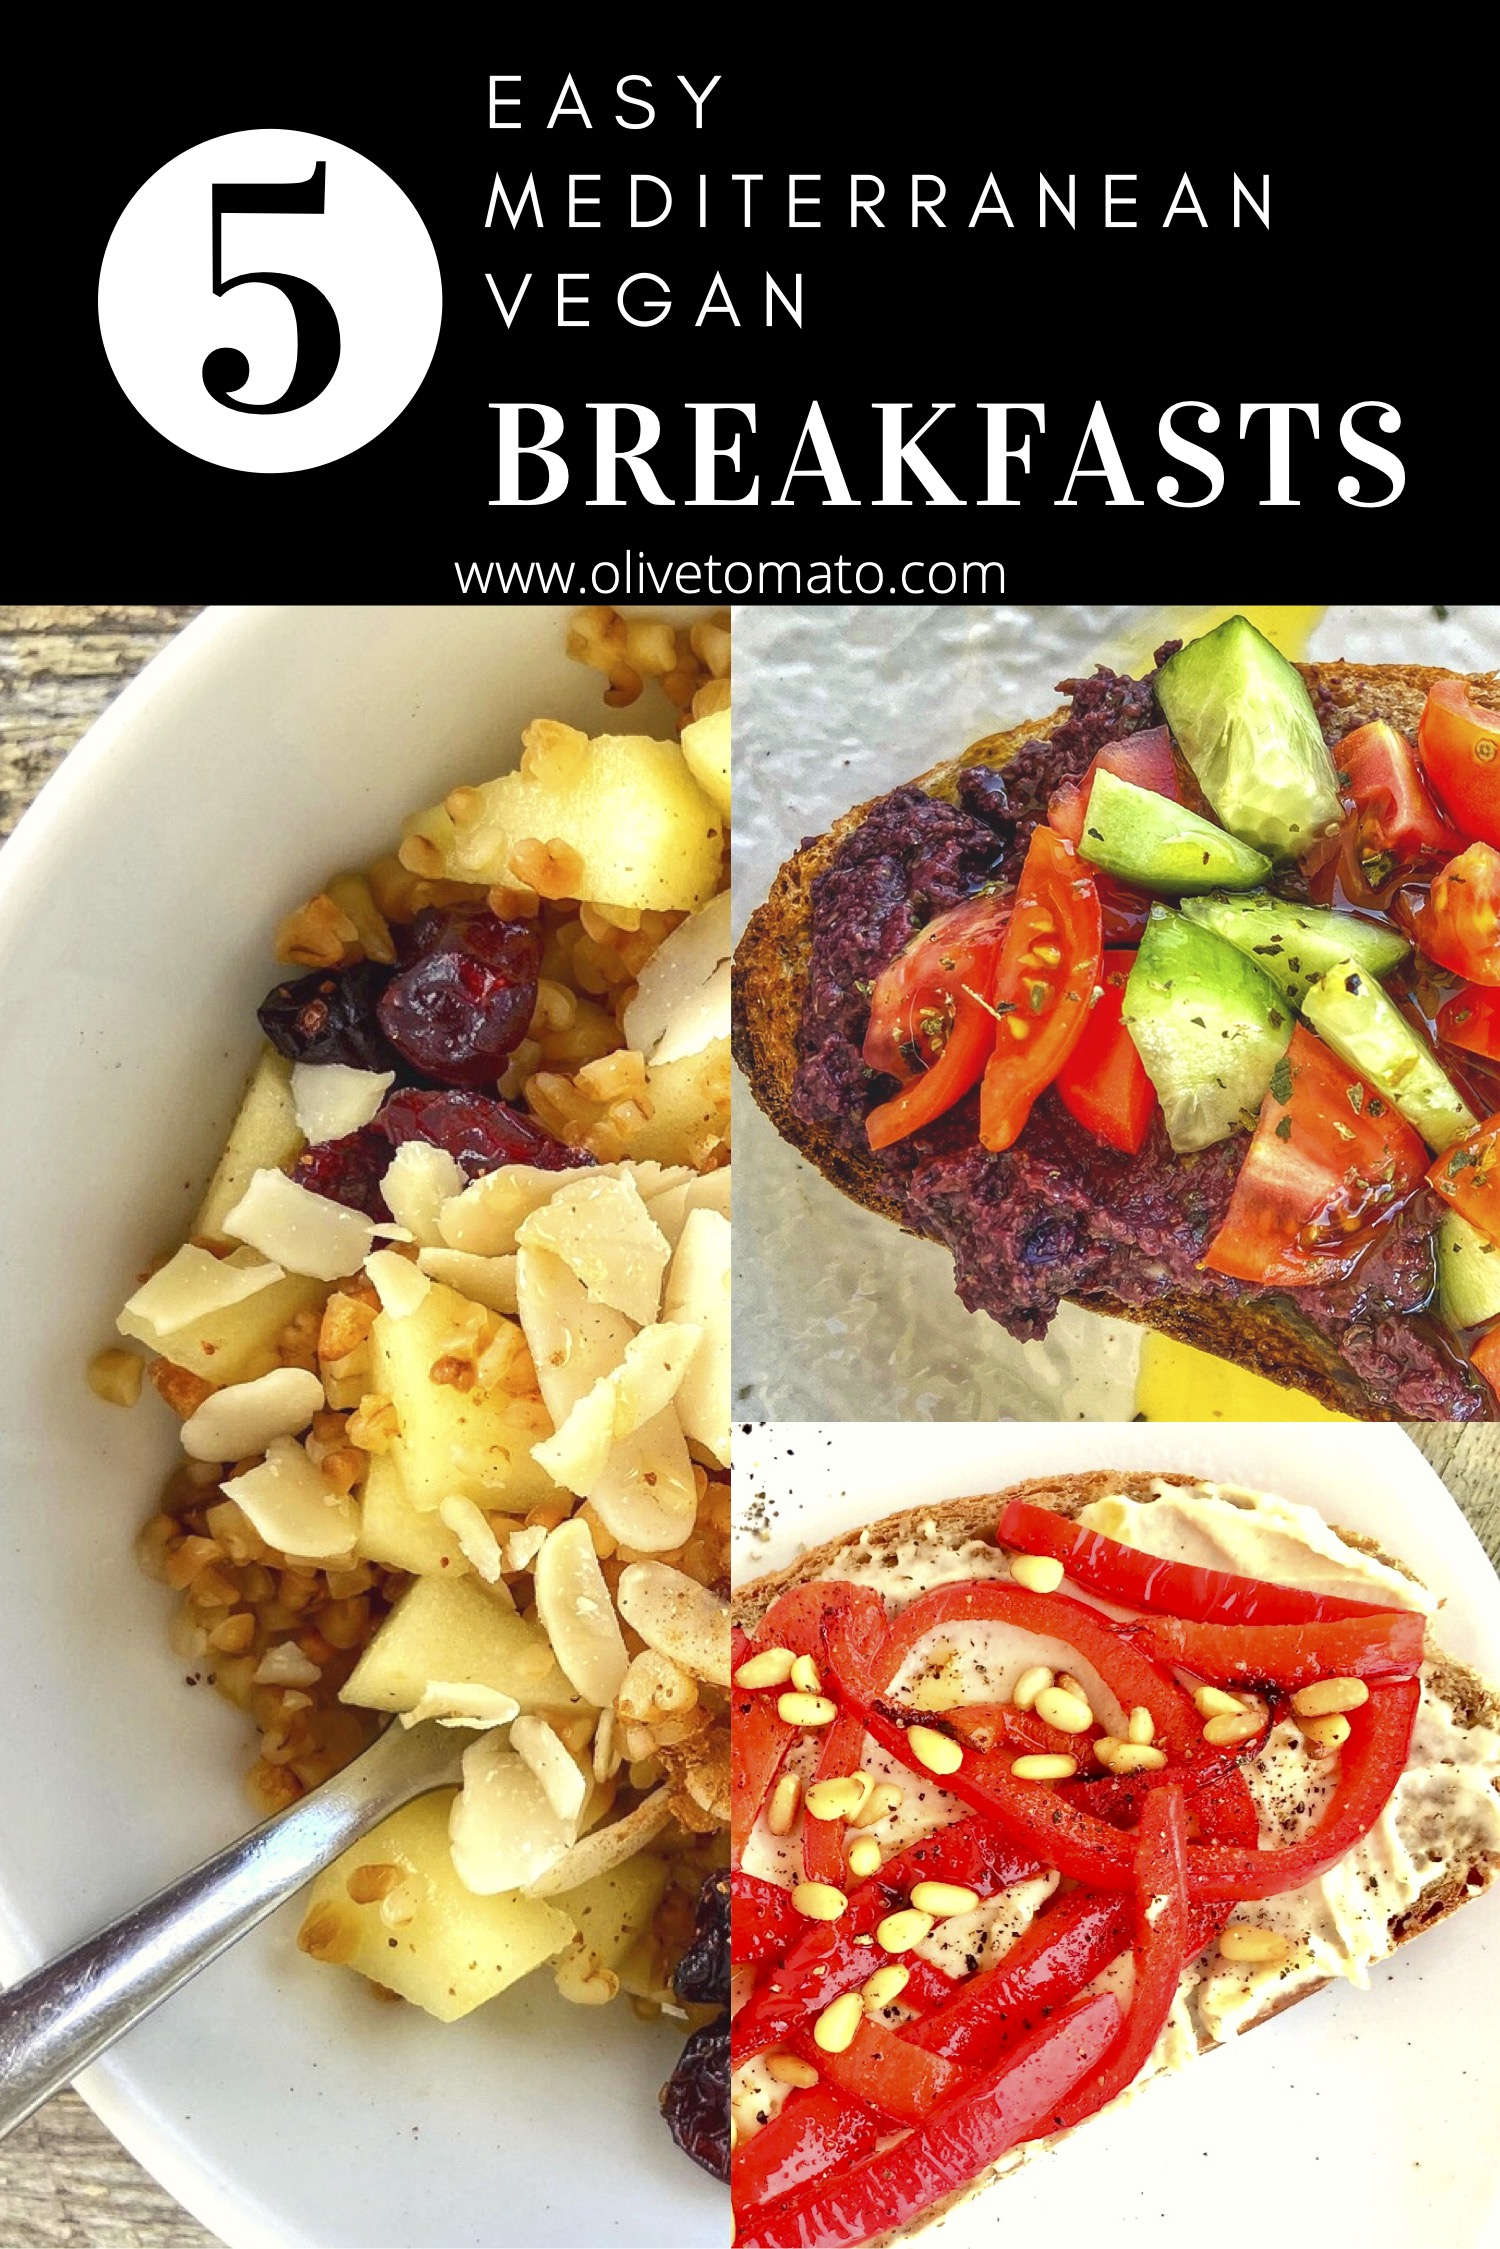 Here are 5 EASY Mediterranean vegan breakfast ideas to start the day with a delicious and satisfying breakfast that will keep you full of energy.